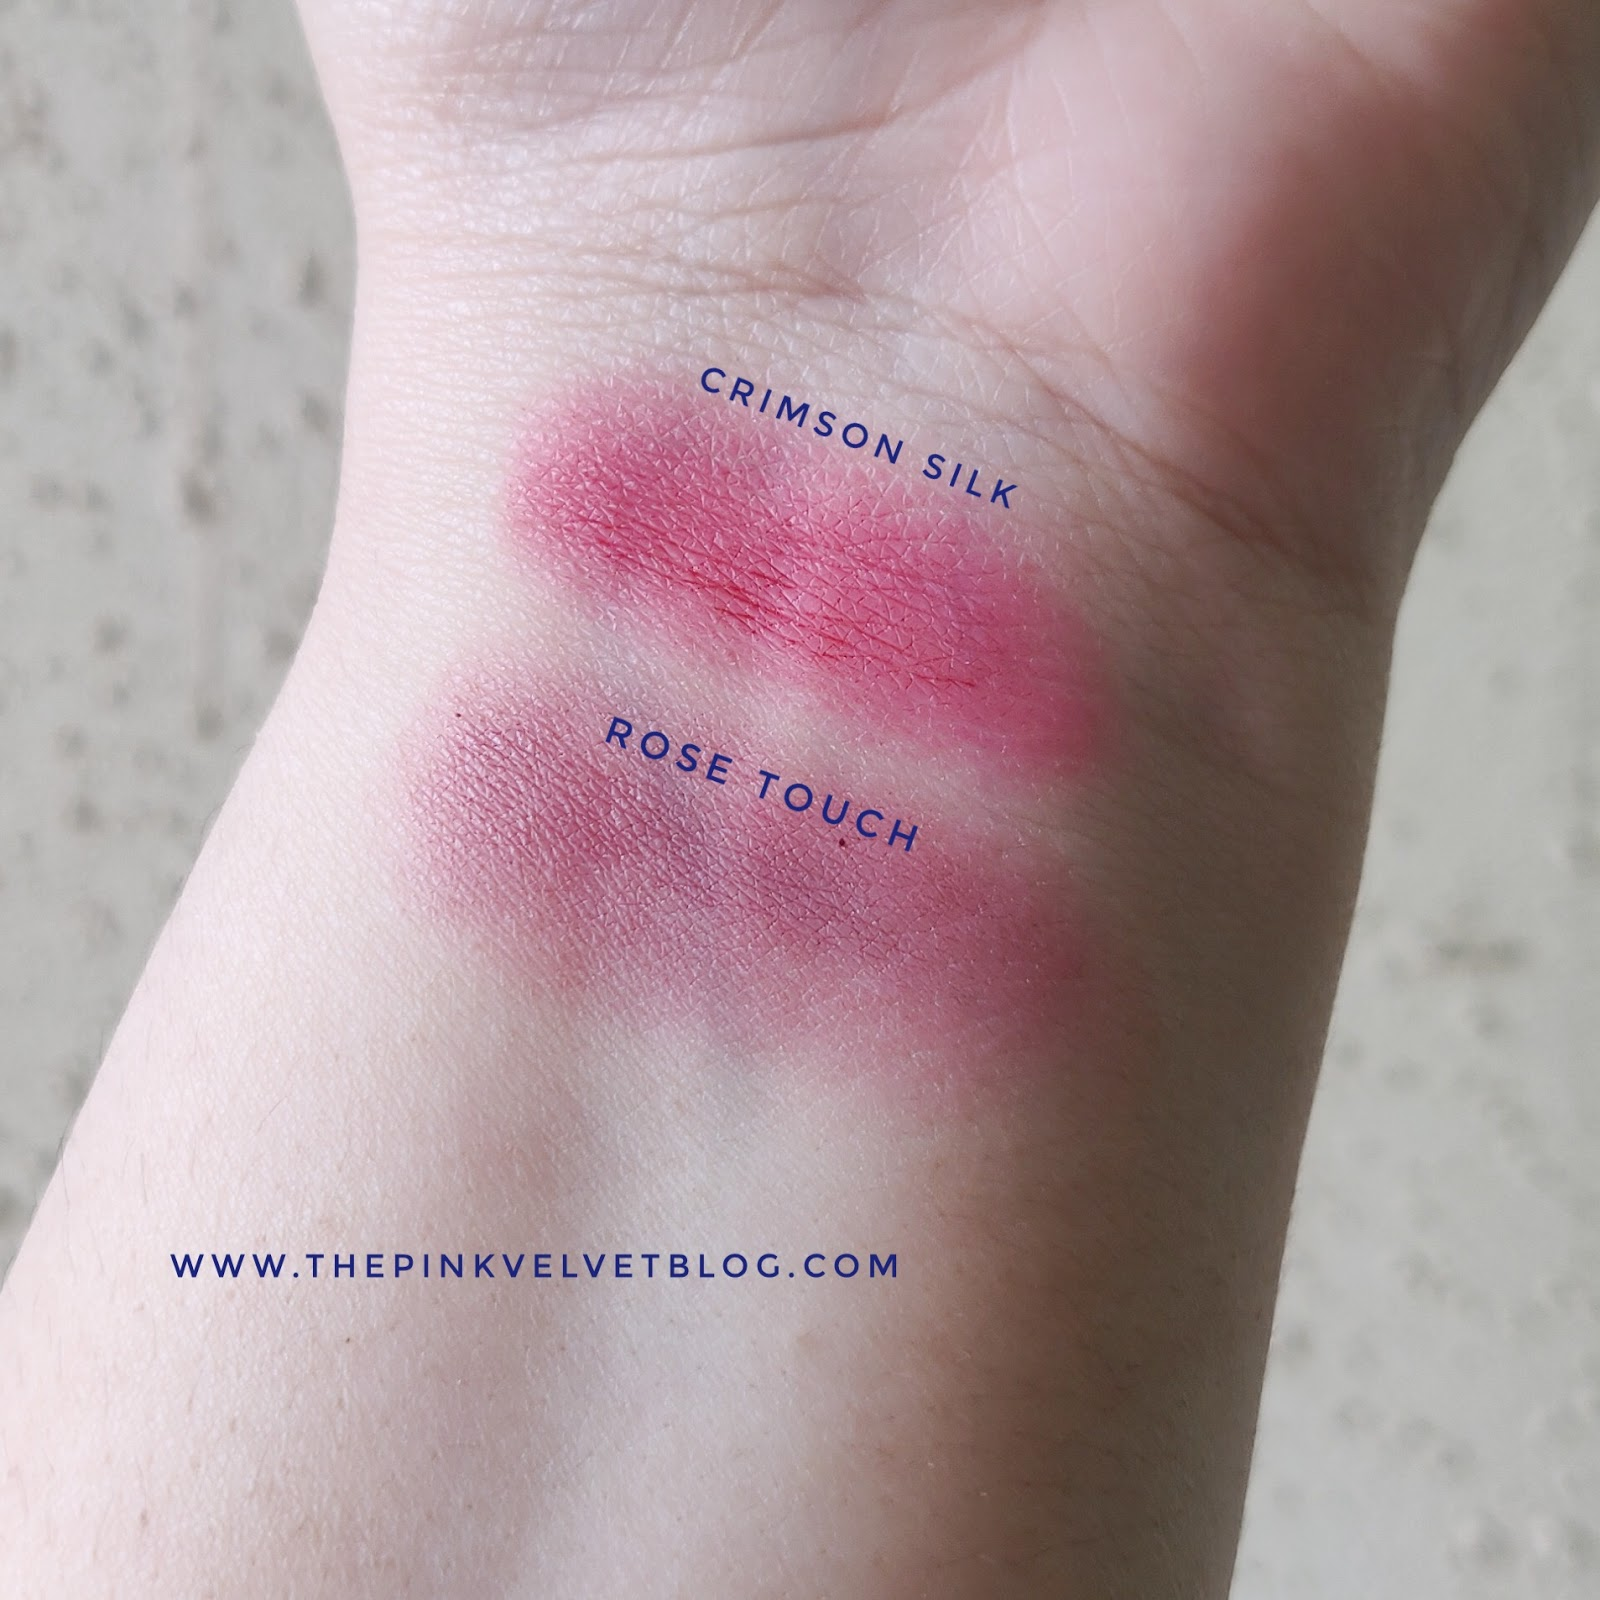 Lakme 9to5 Lip and Cheek Color - Crimson Silk and Rose Touch - Review and Swatches